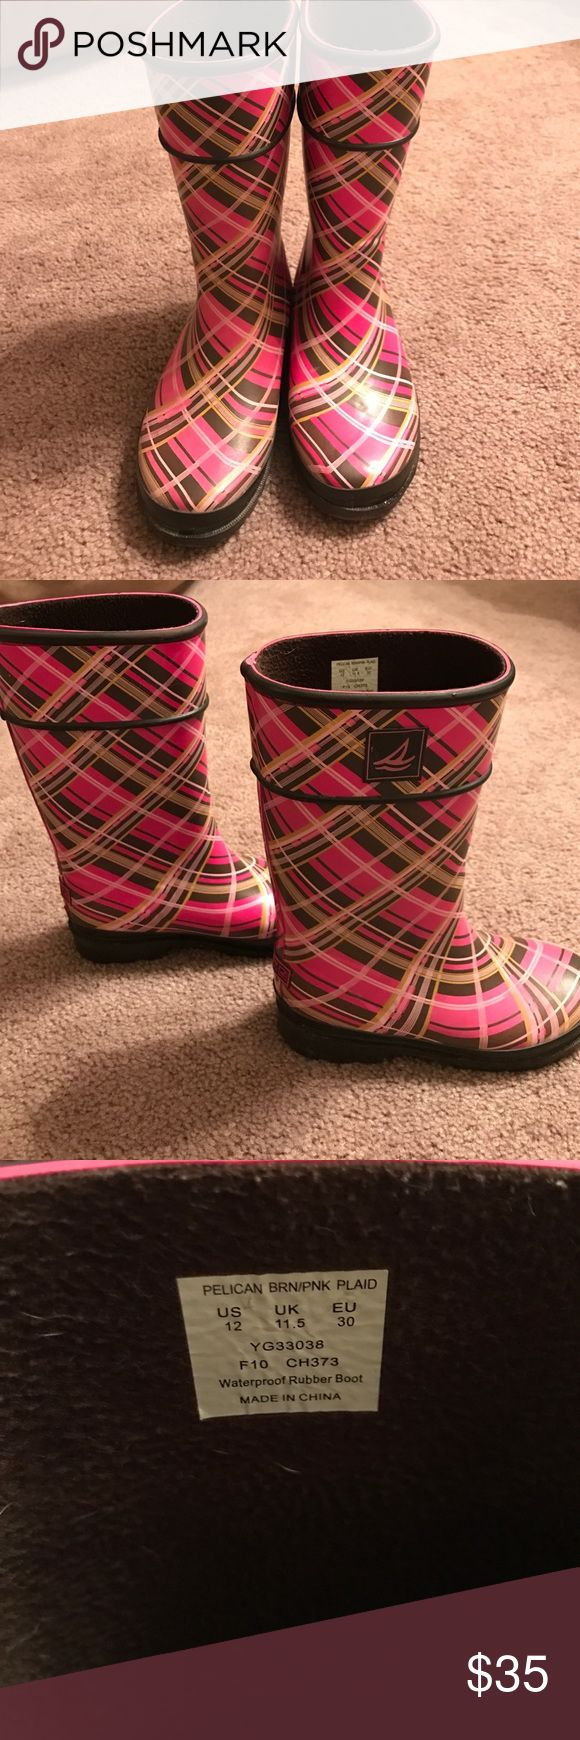 Girls Sperry Rain boots Girls Sperry Rain Boots Size 12 worn a few times great condition Sperry Top-Sider Shoes Rain & Snow Boots